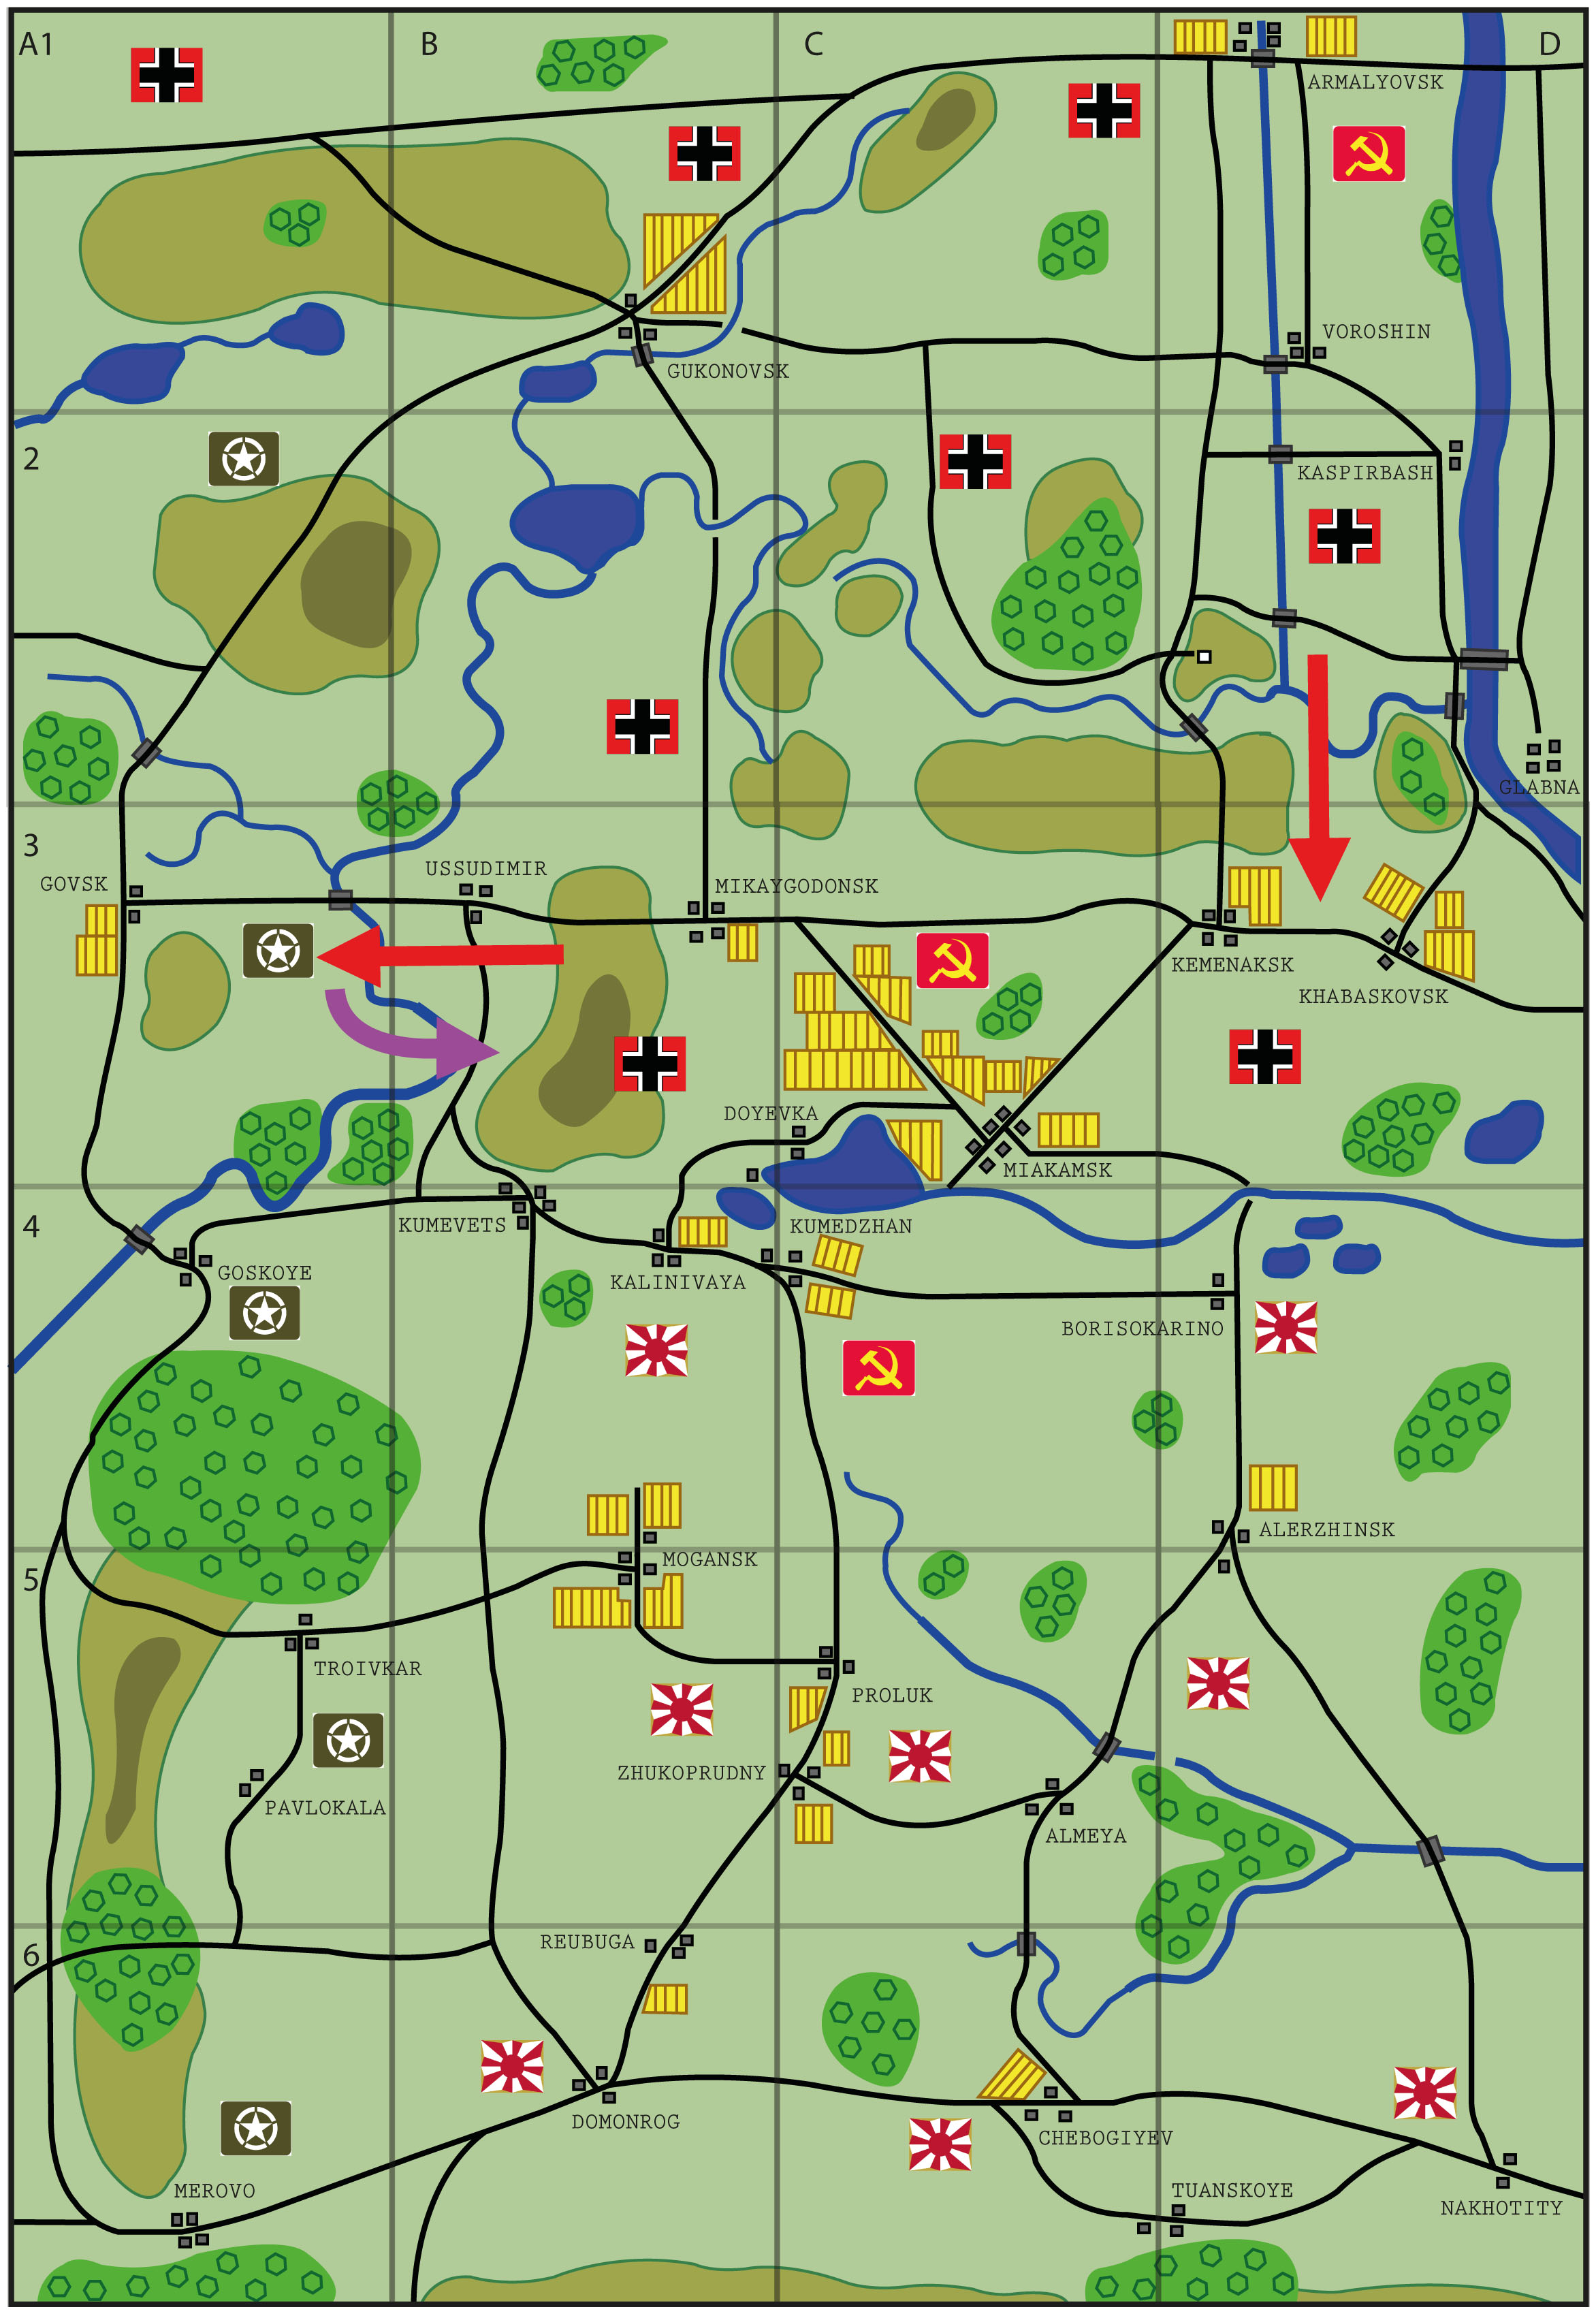 Ostfront campaign - 10th January - 17th January 1945